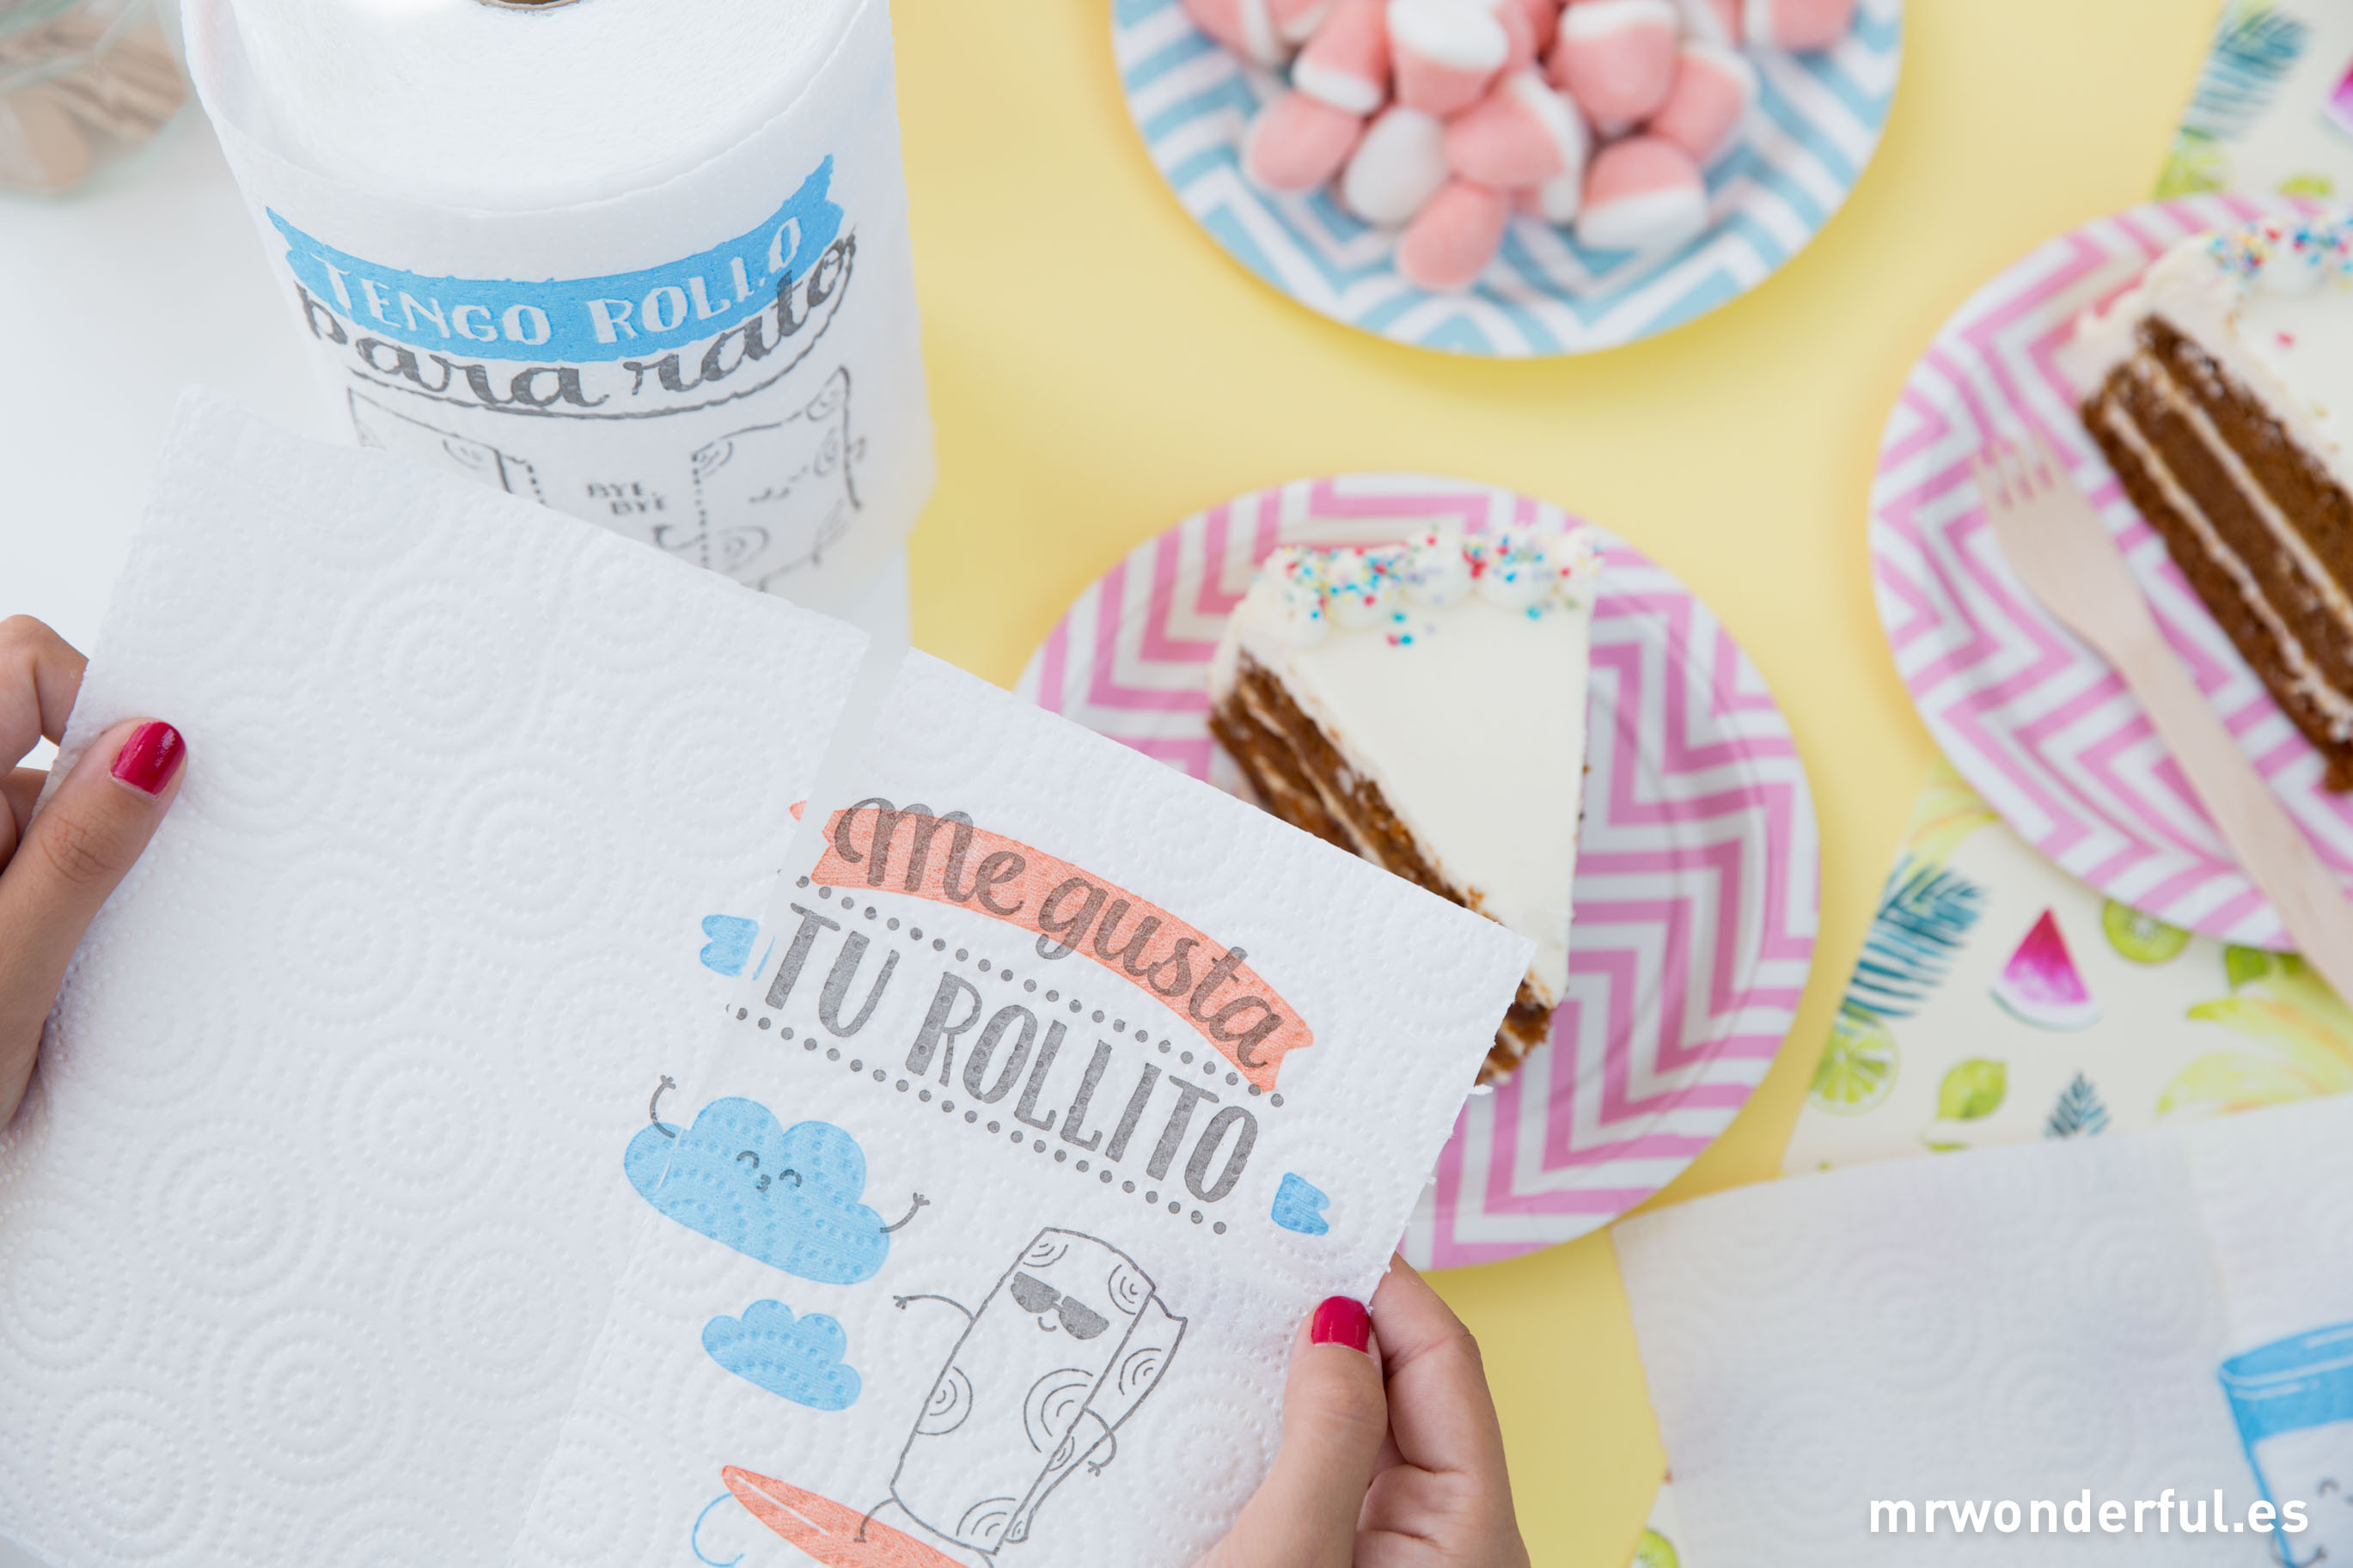 mrwonderful_colohogar-2015-papel-48